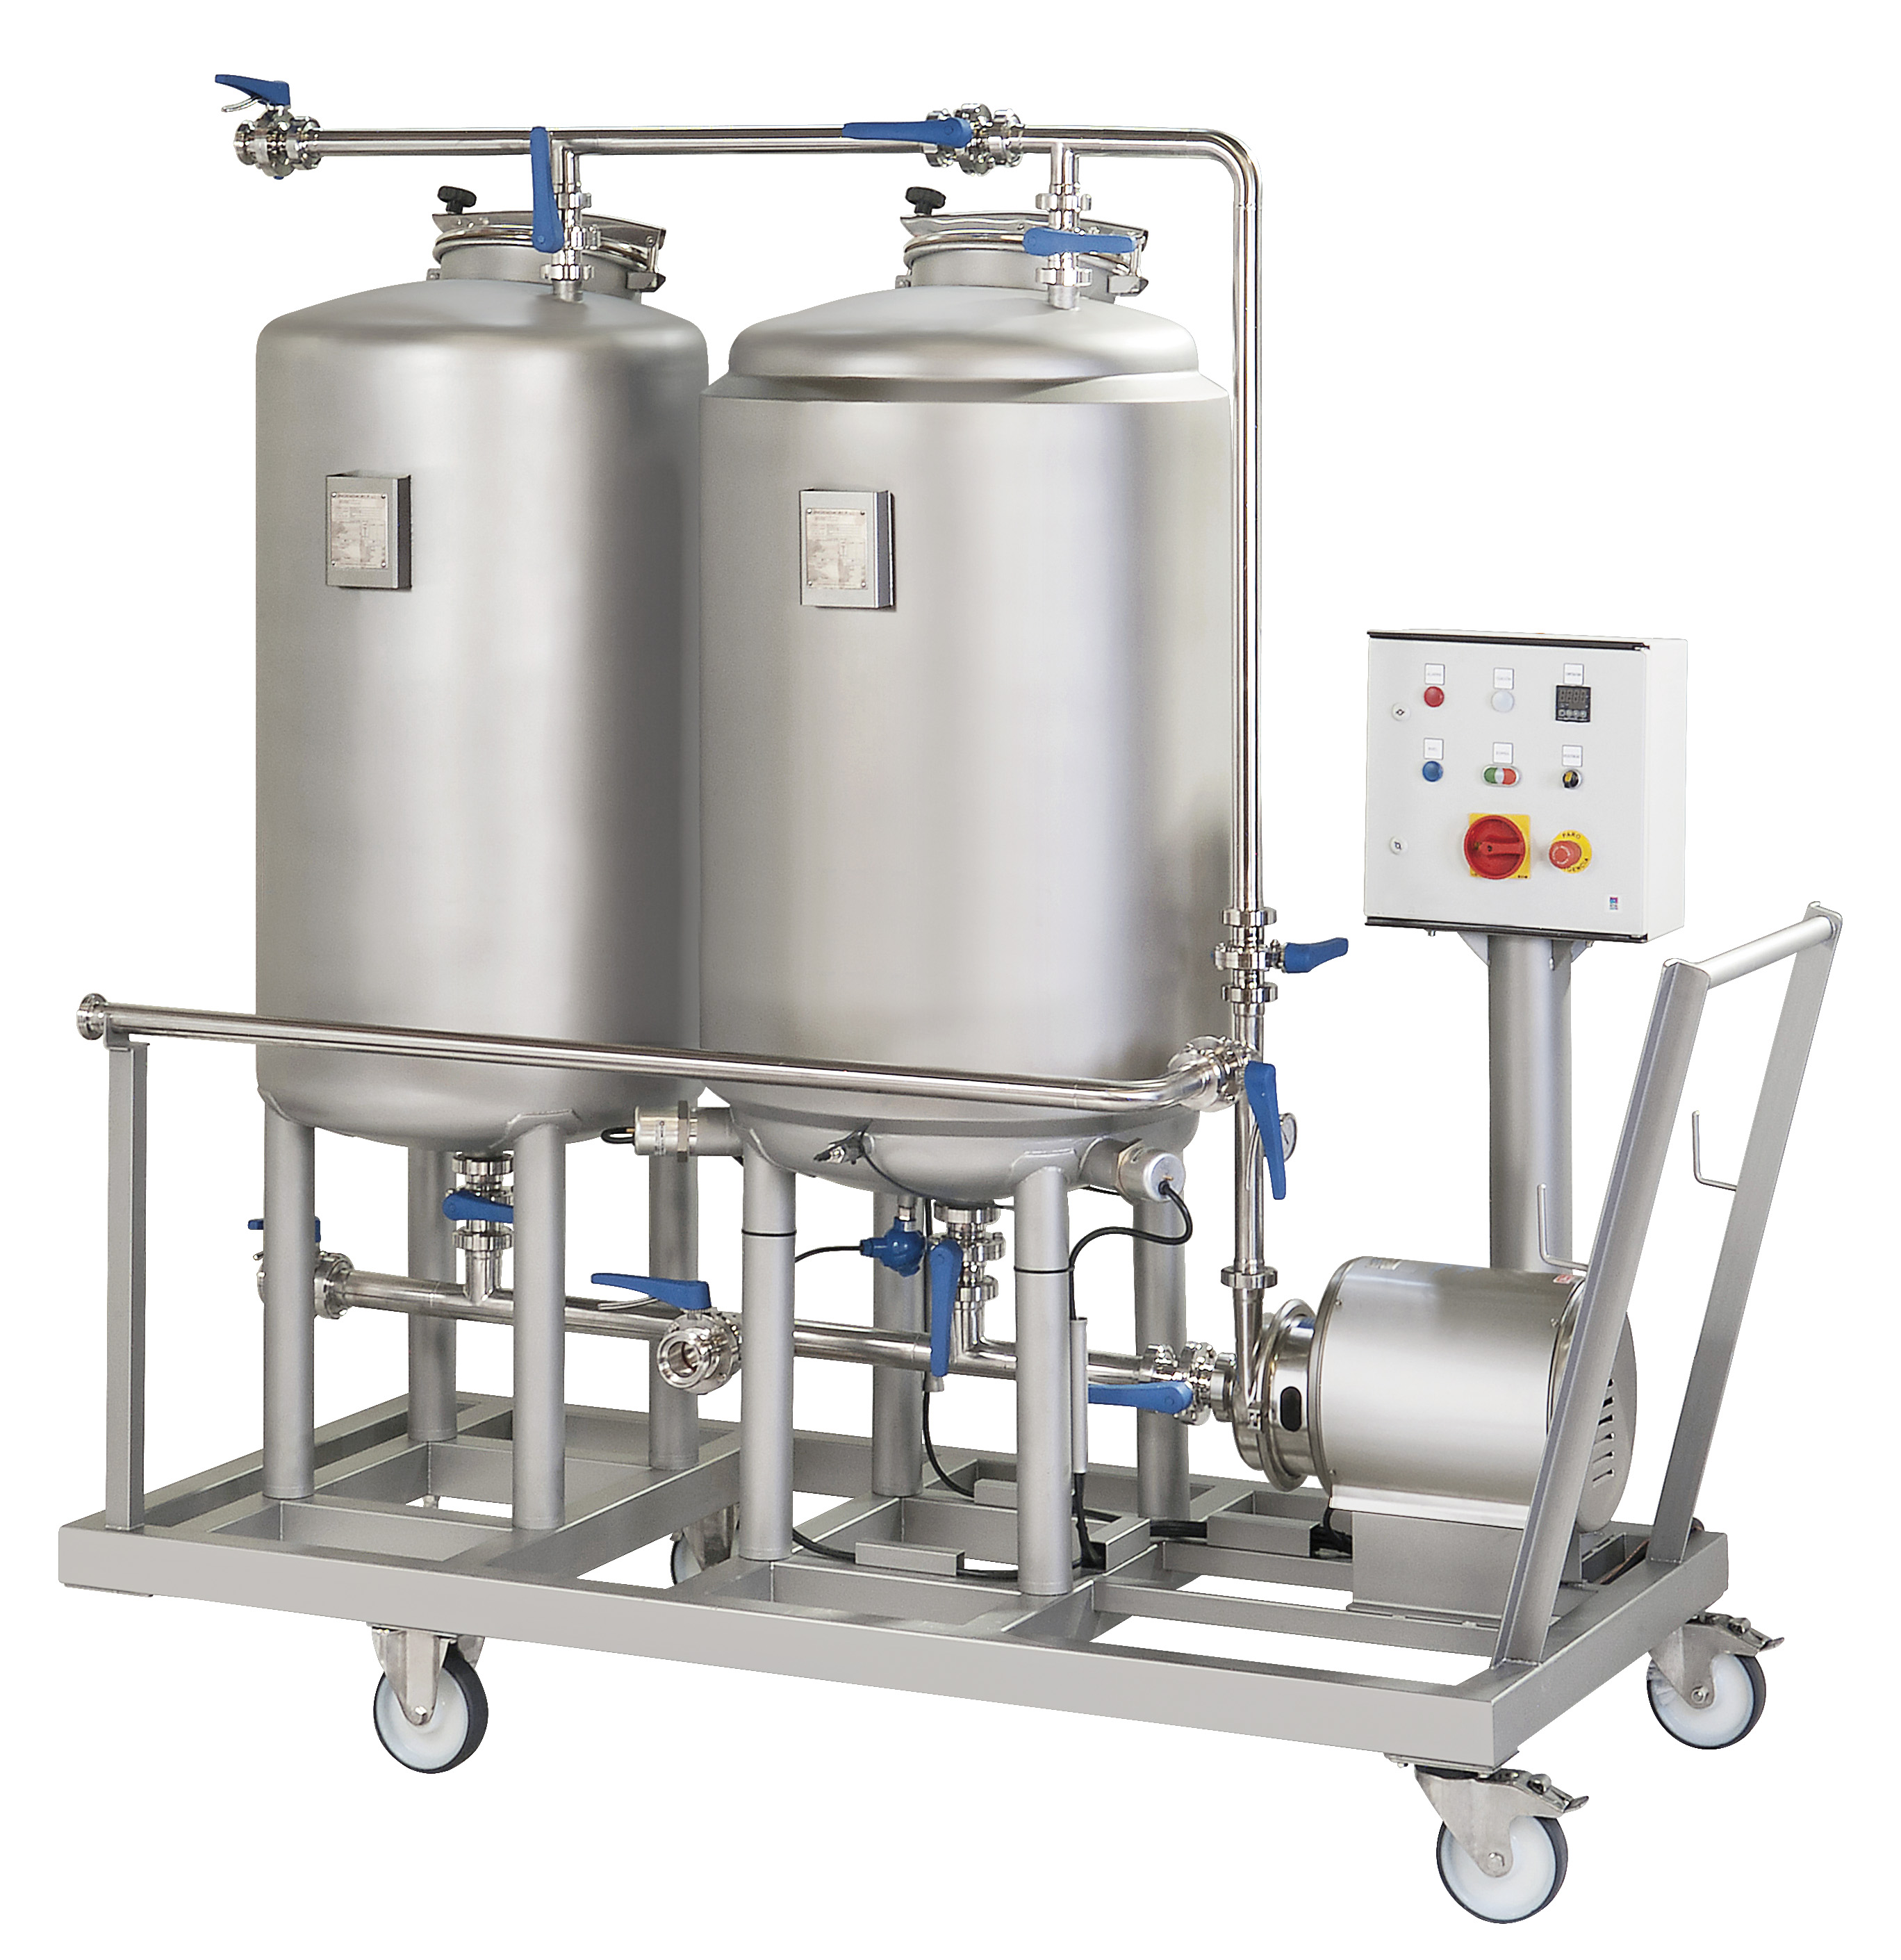 CIP Skid Systems